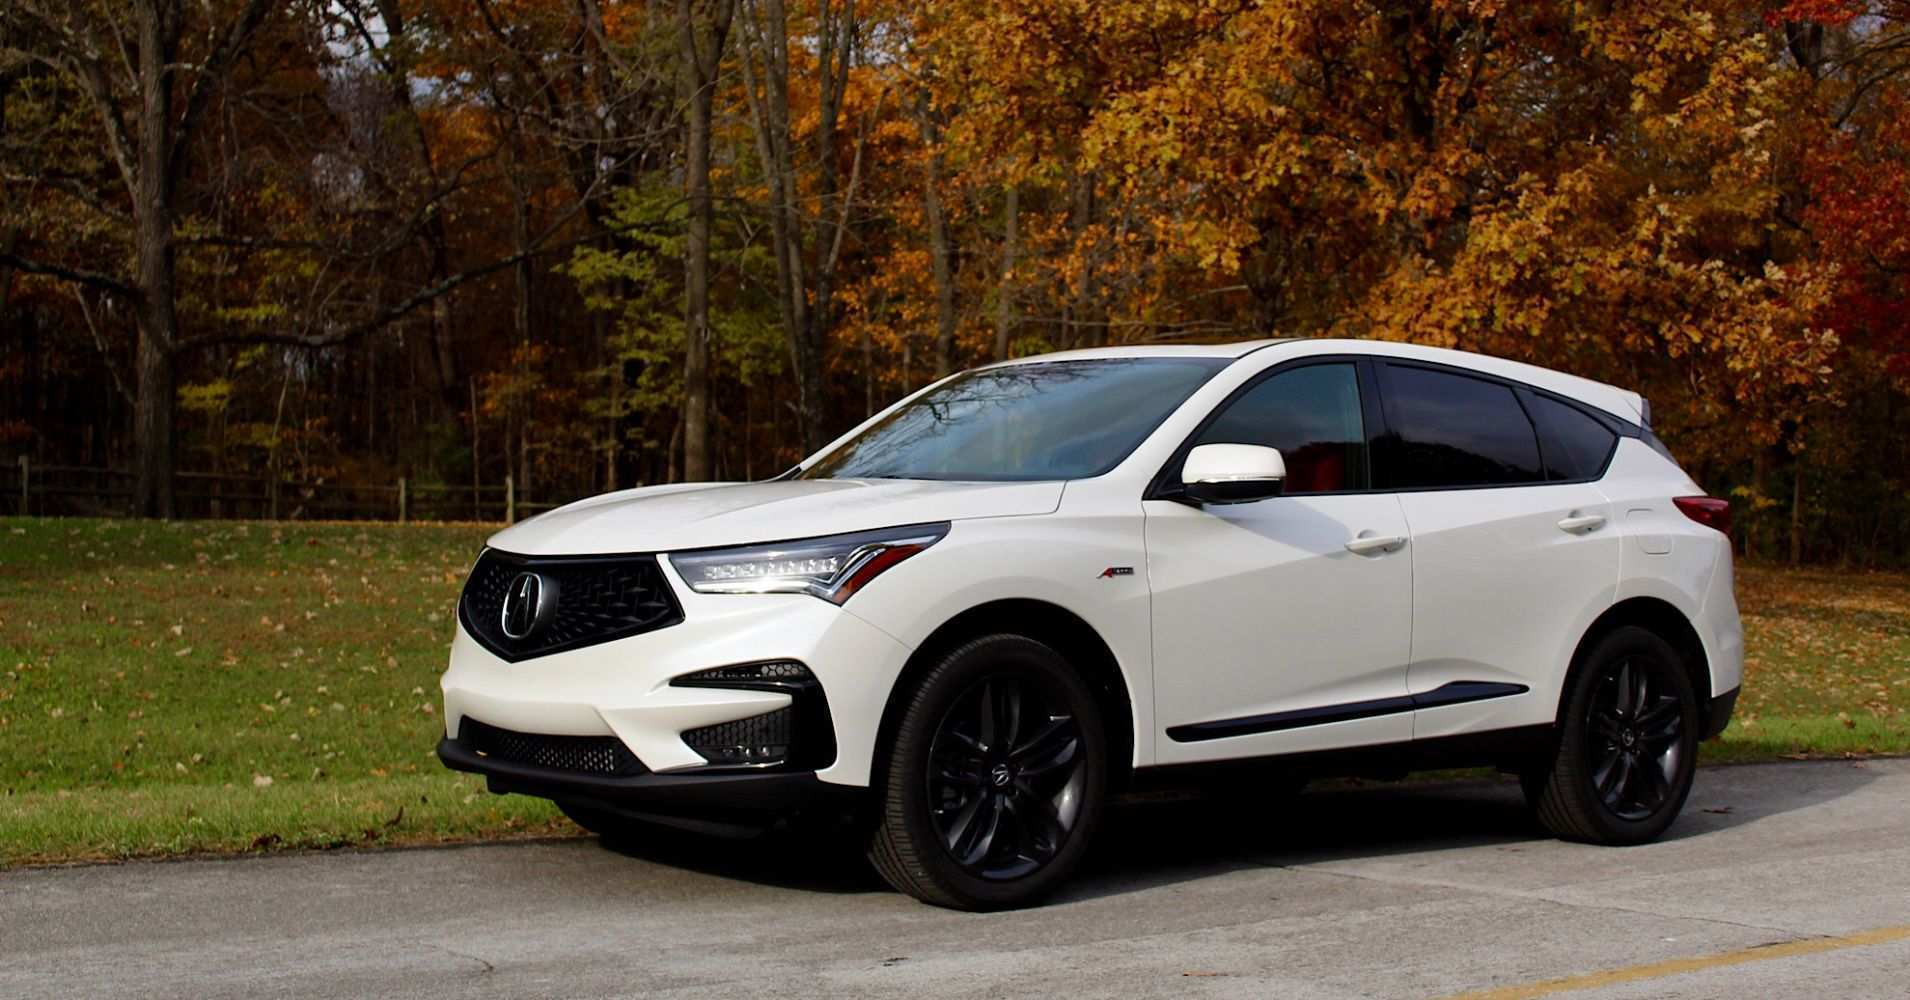 84 New 2019 Acura Rdx Preview Configurations with 2019 Acura Rdx Preview